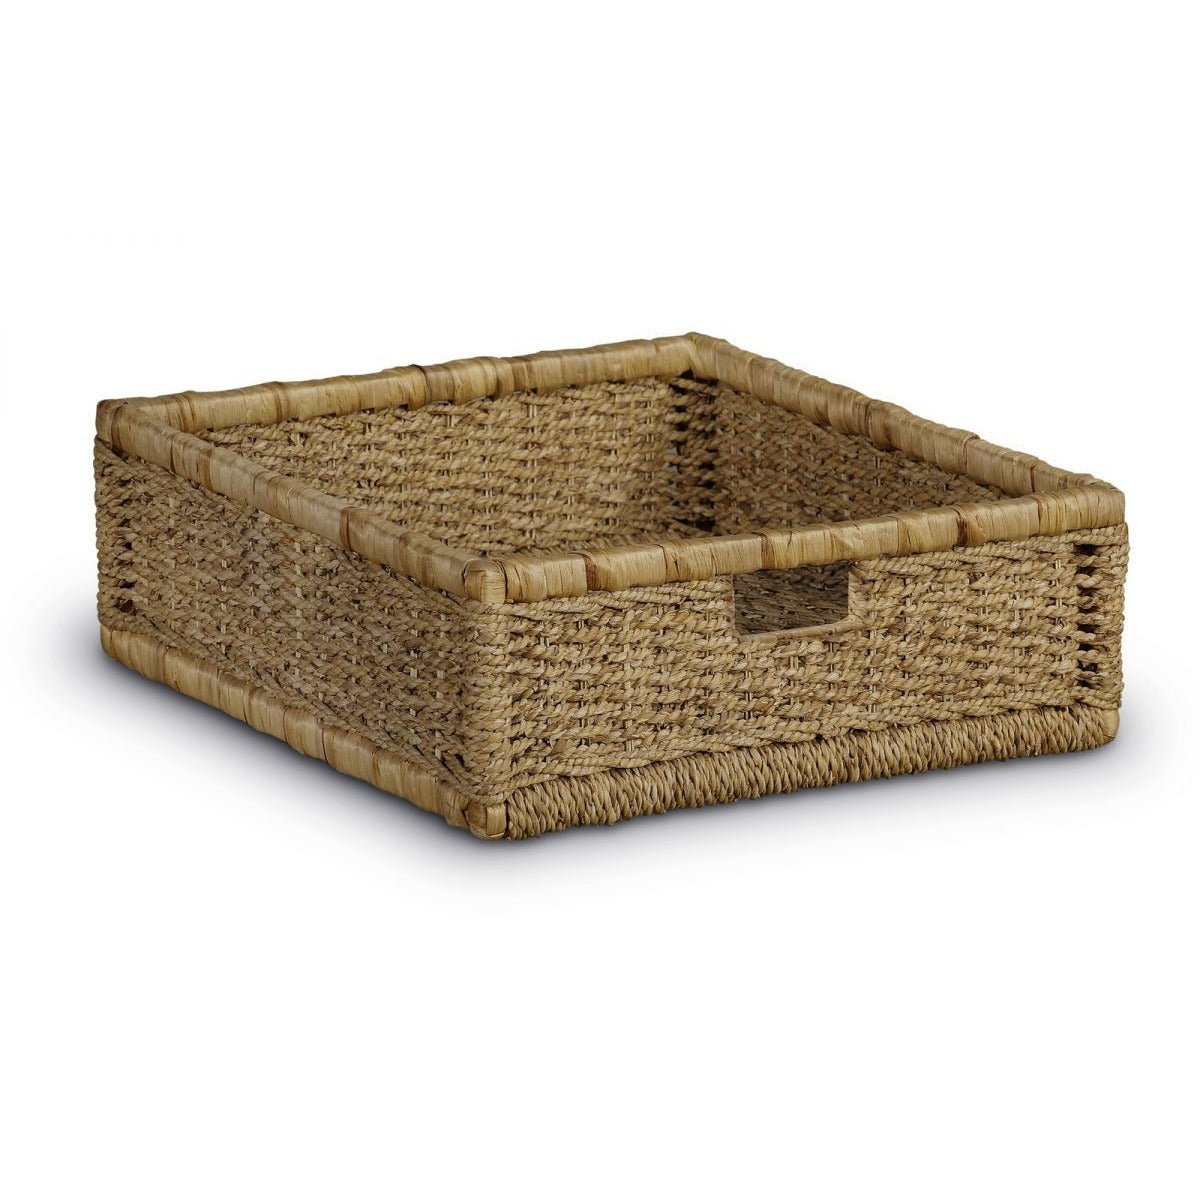 Aspen Storage Baskets set of 2 - Perfectly Home Interiors